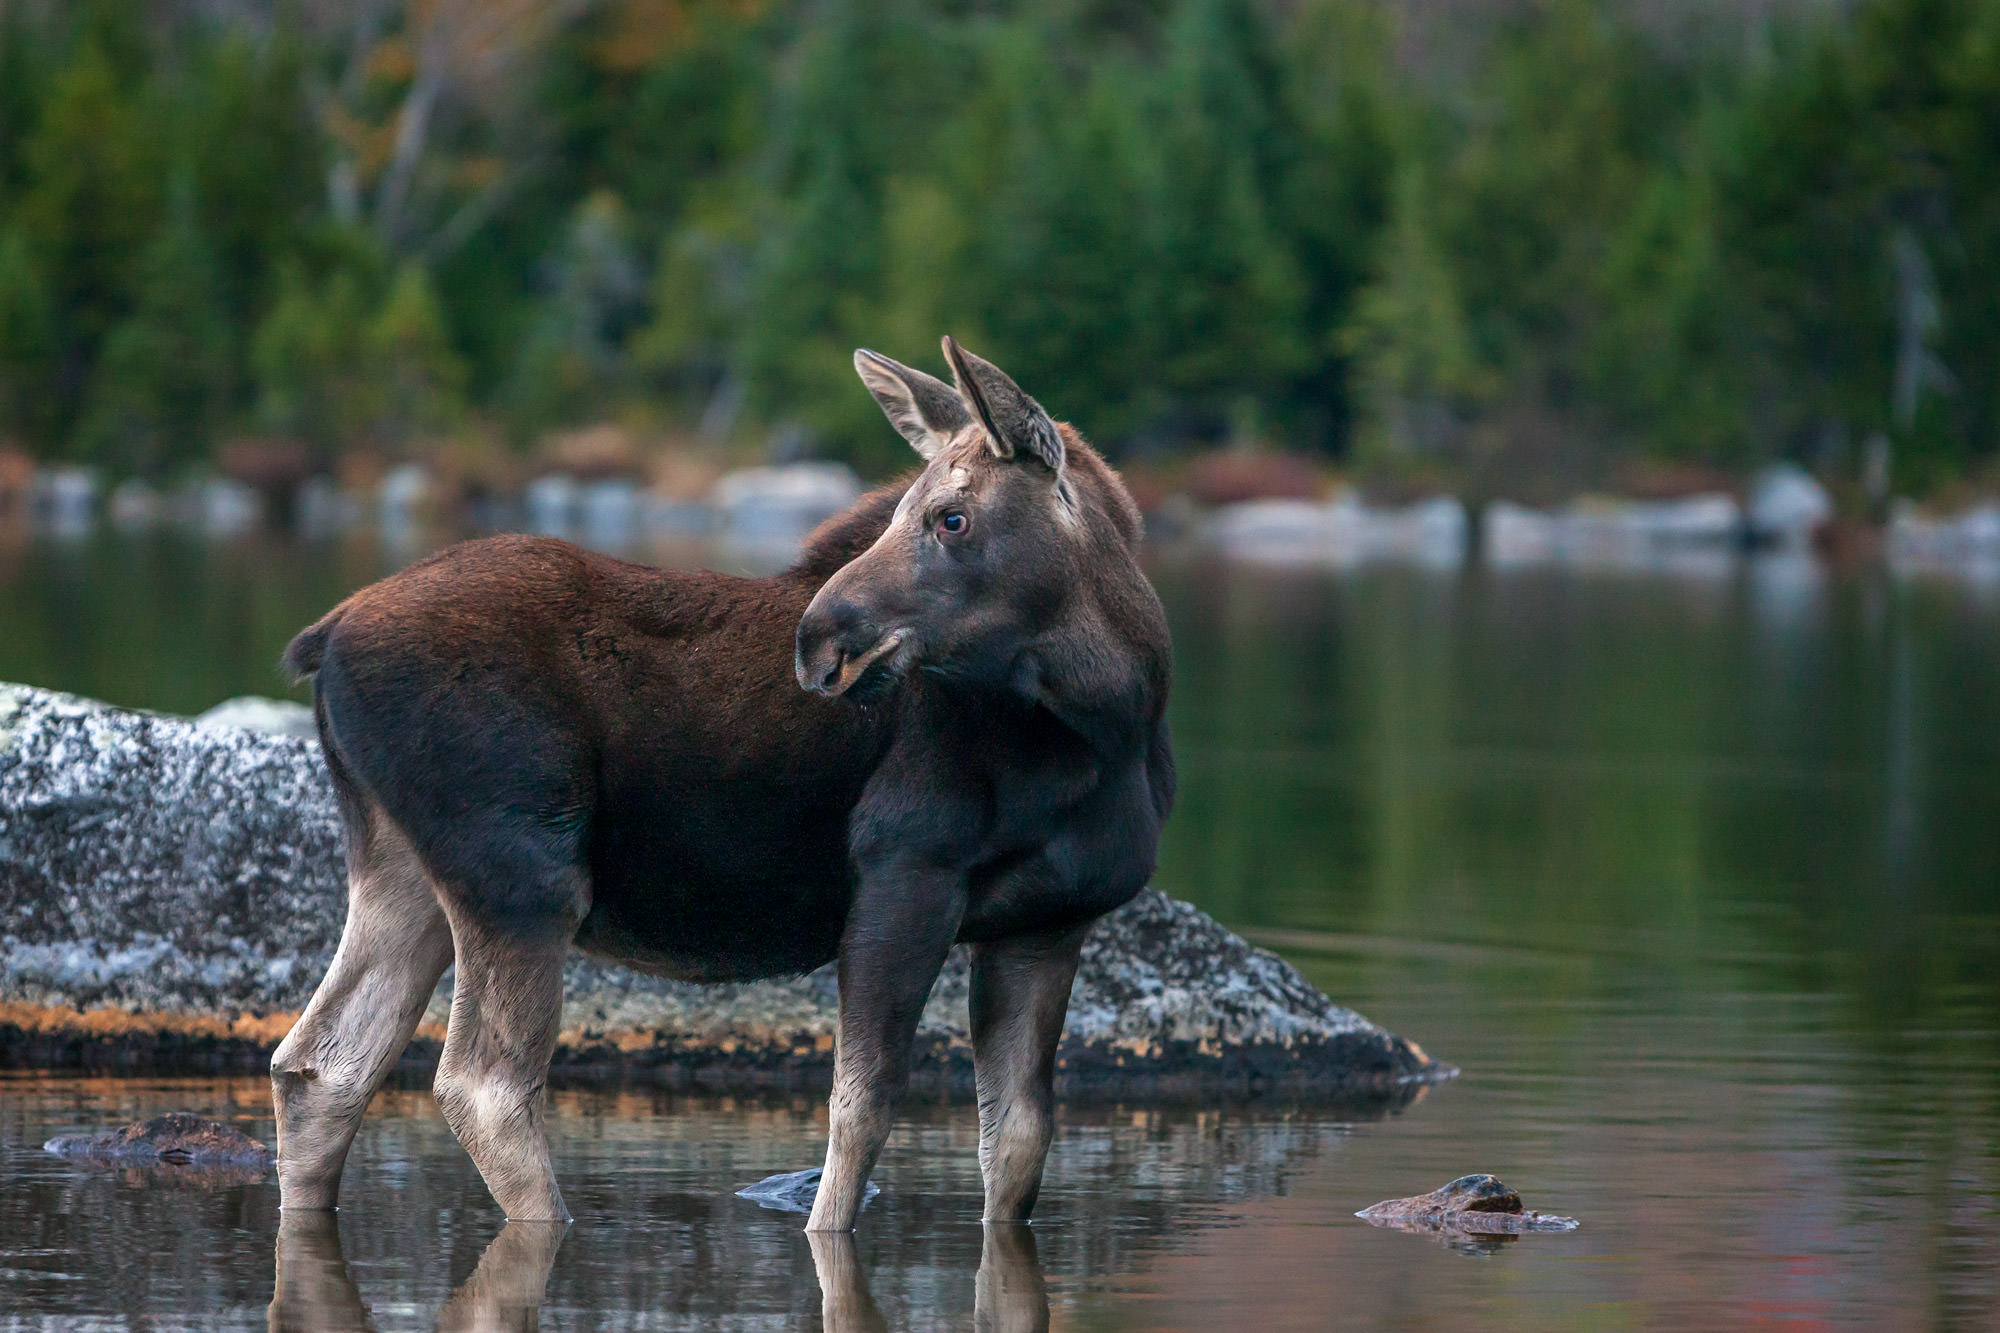 Moose, Bull Moose, Maine, Baxter, limited edition, photograph, fine art, wildlife, photo